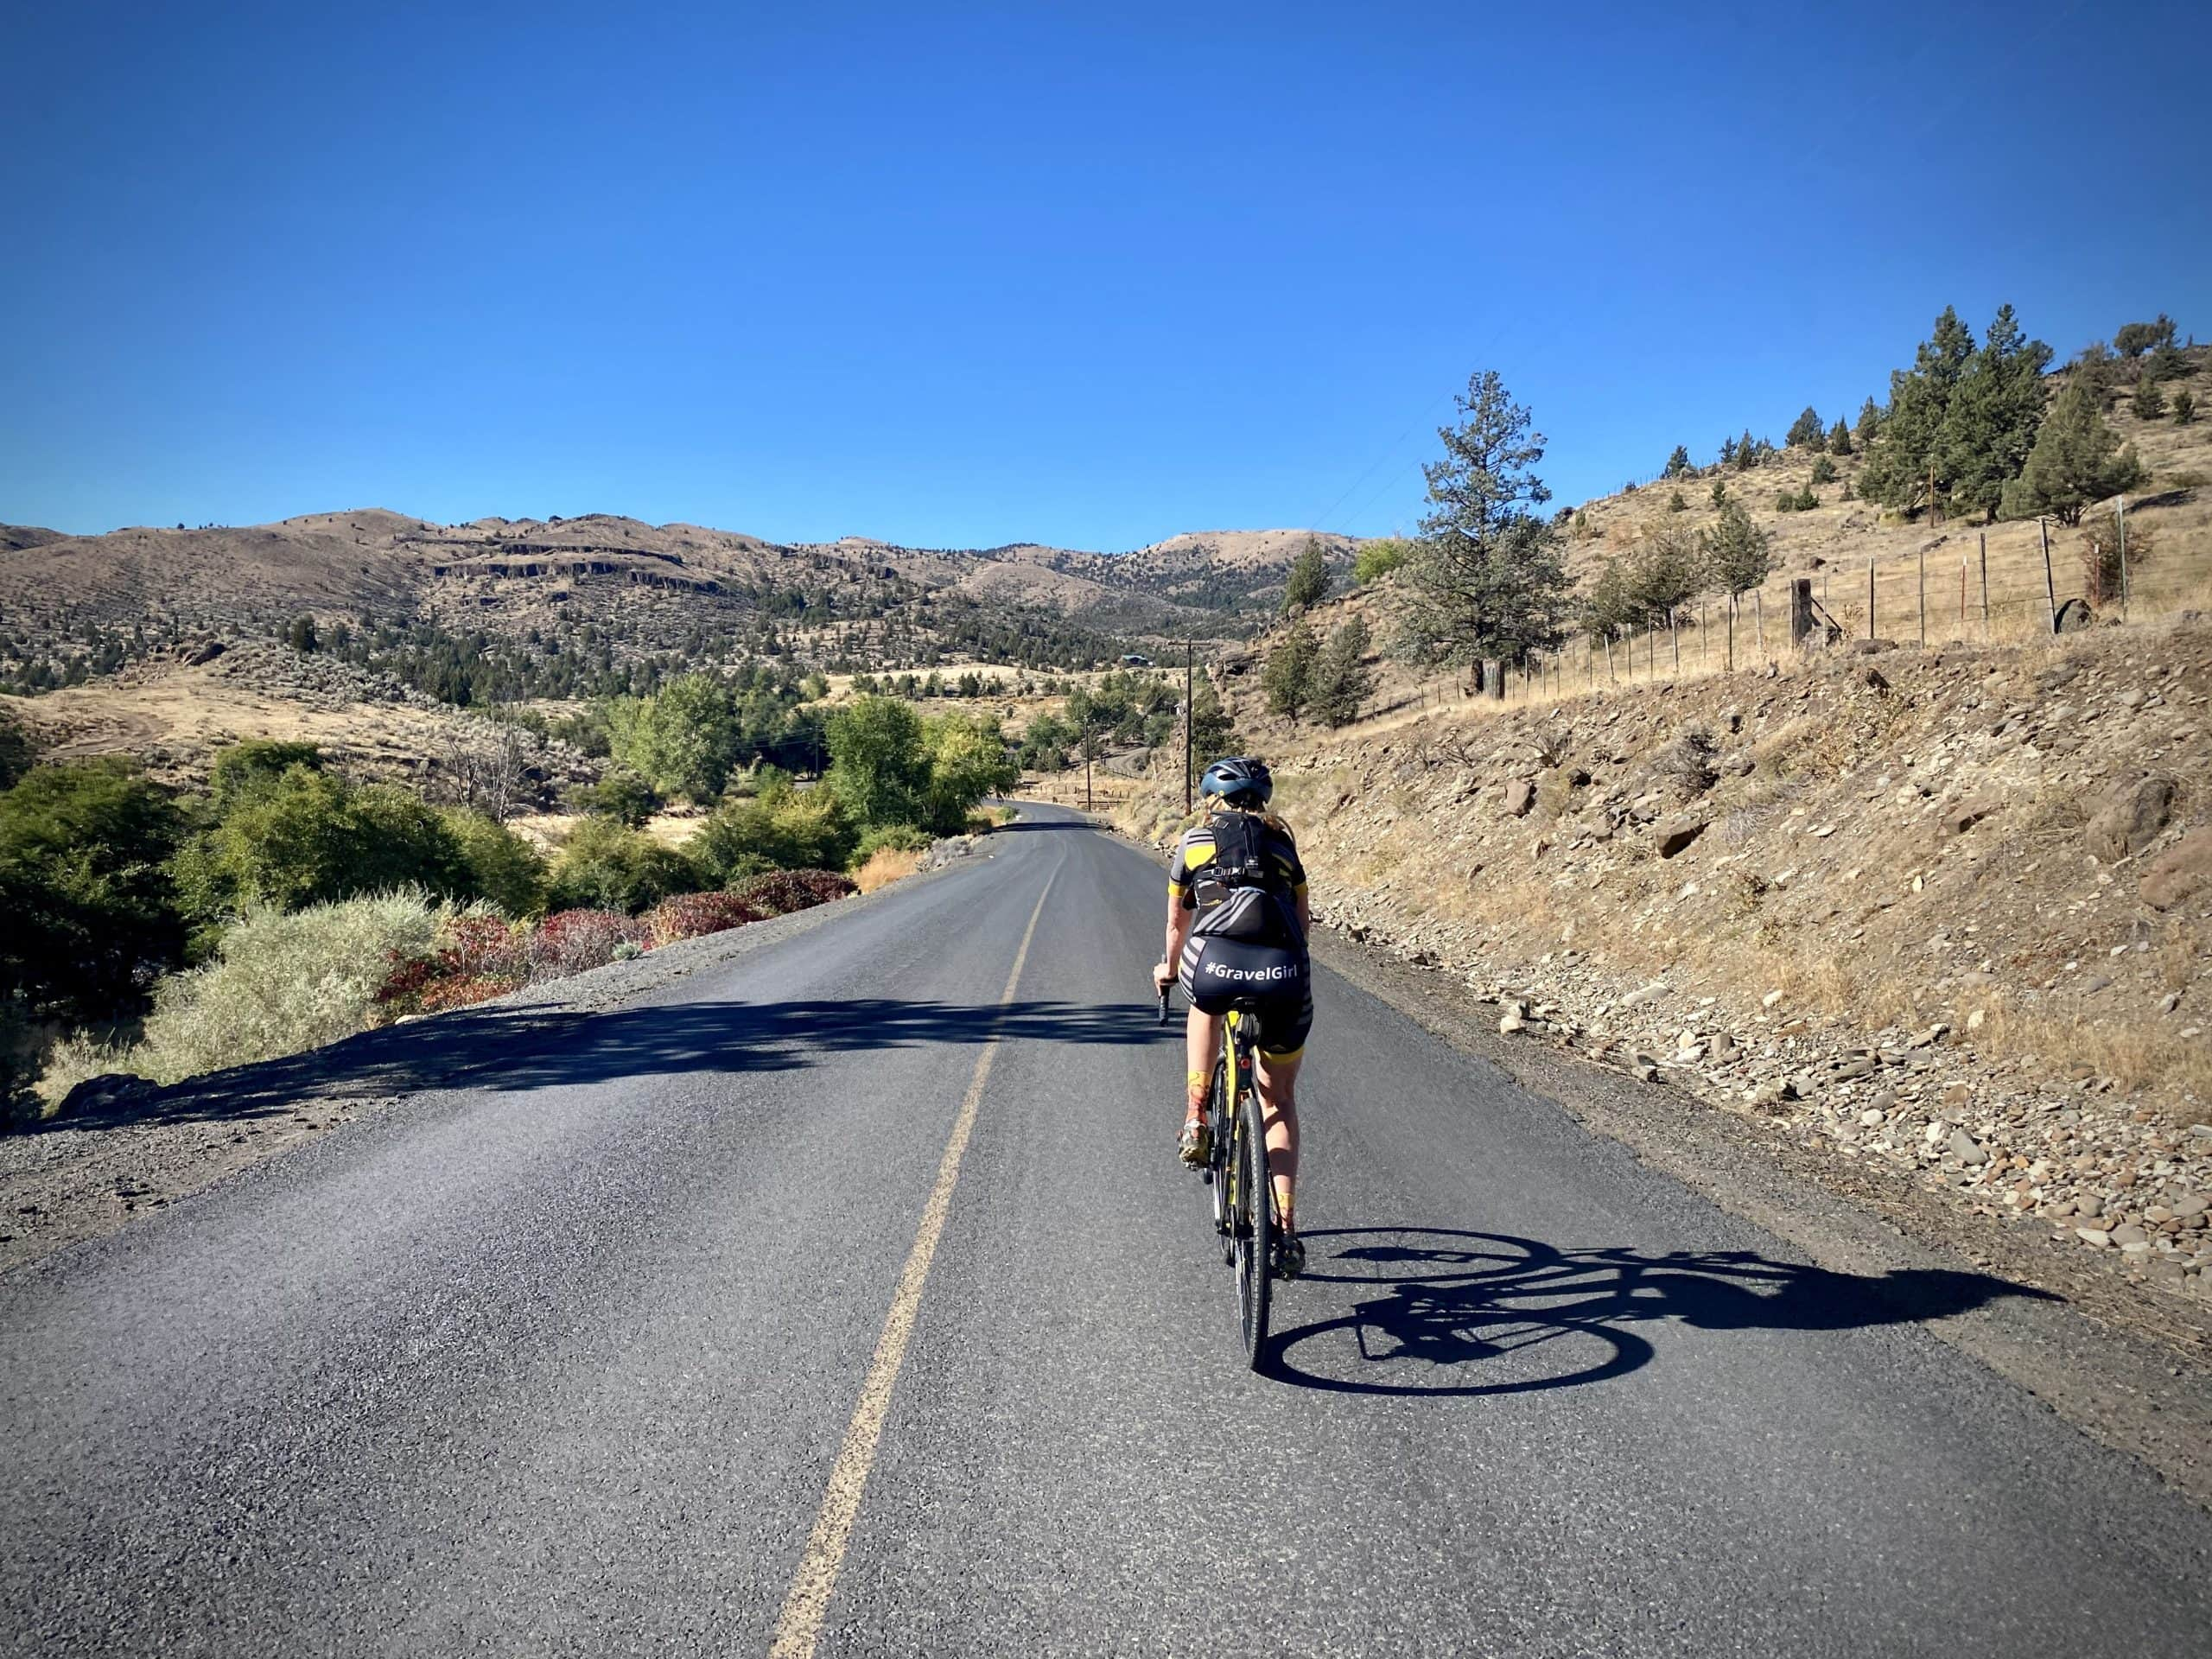 Gravel Girl leading out on paved road along the South Fork of the John Day river in Oregon.